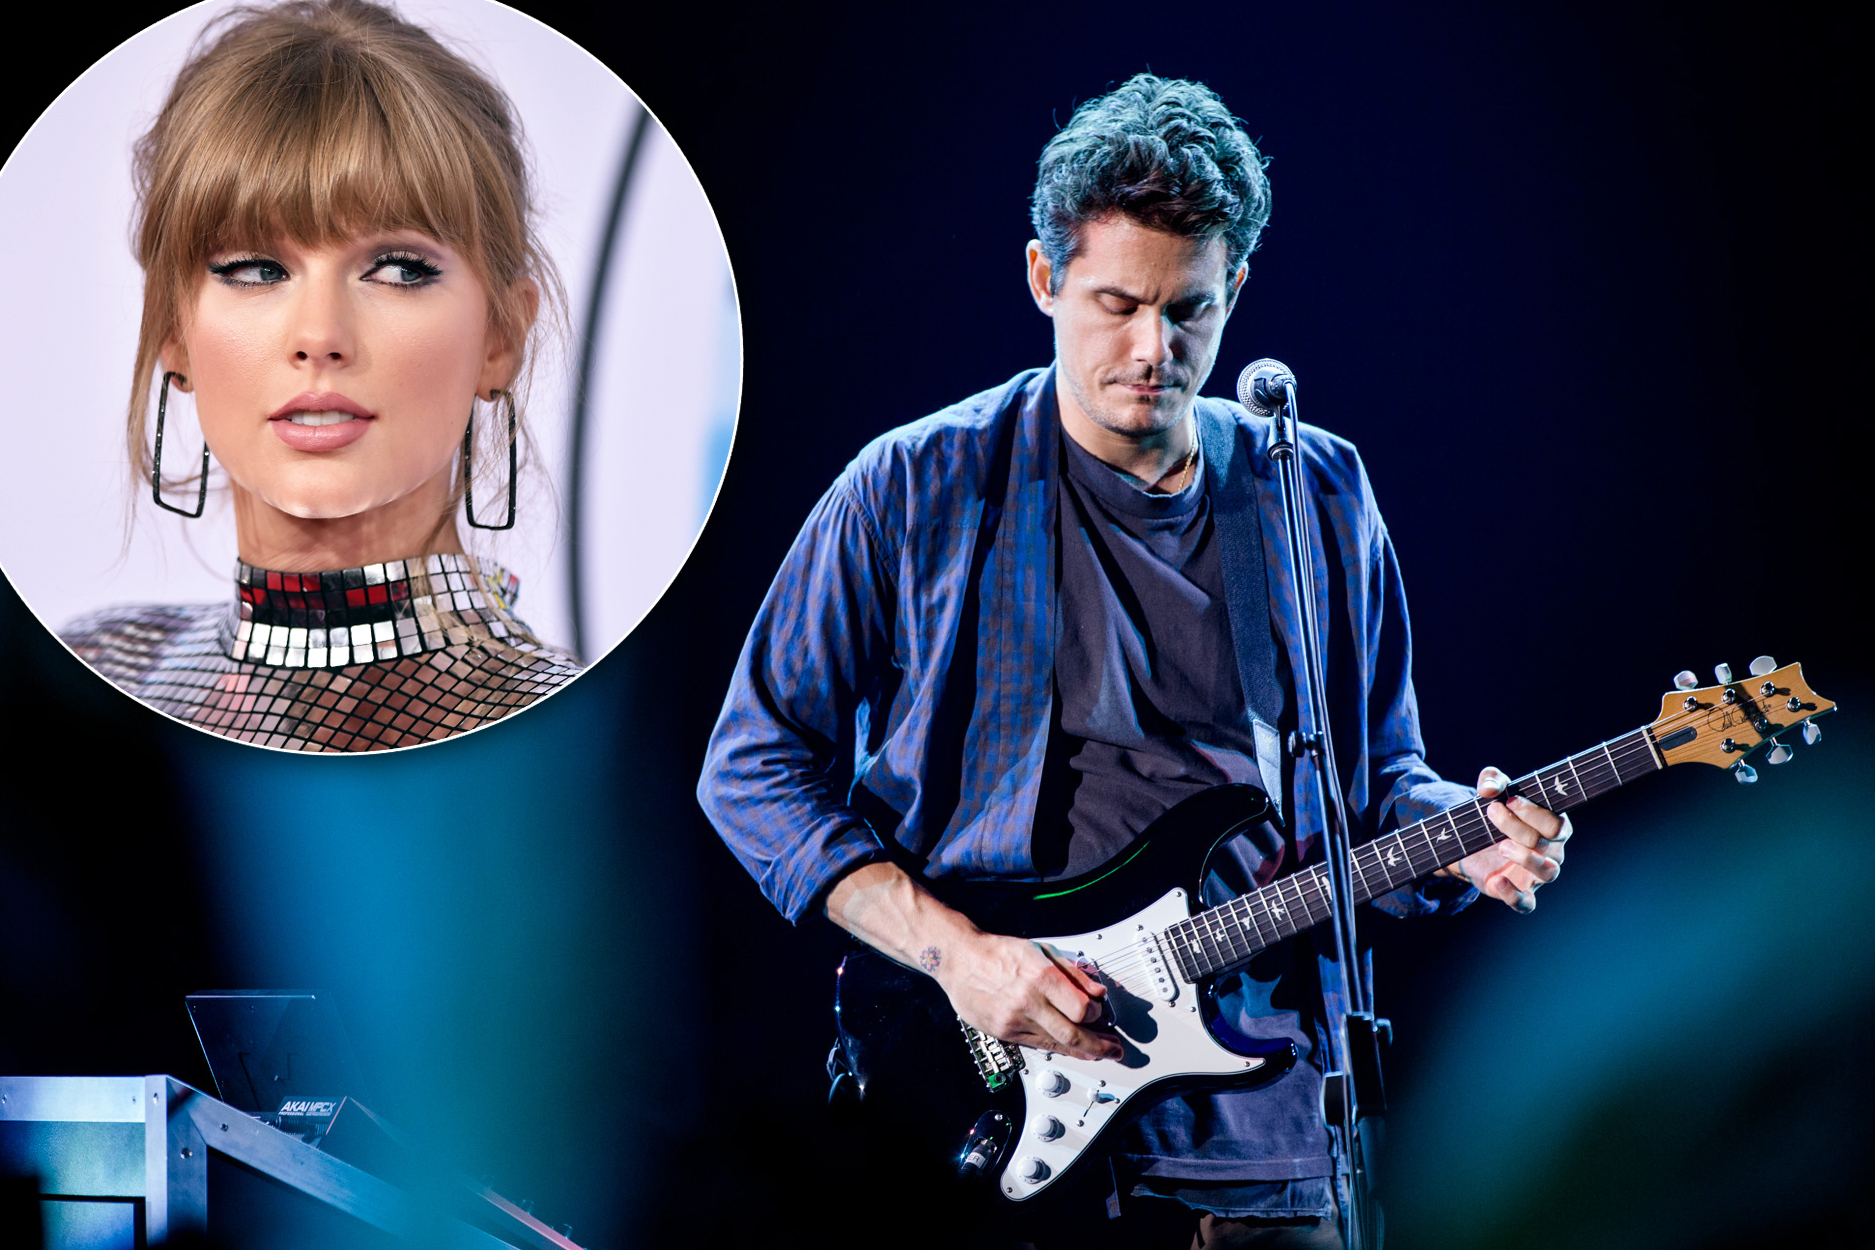 John Mayer Is a Fan of Ex-Girlfriend Taylor Swift's Album